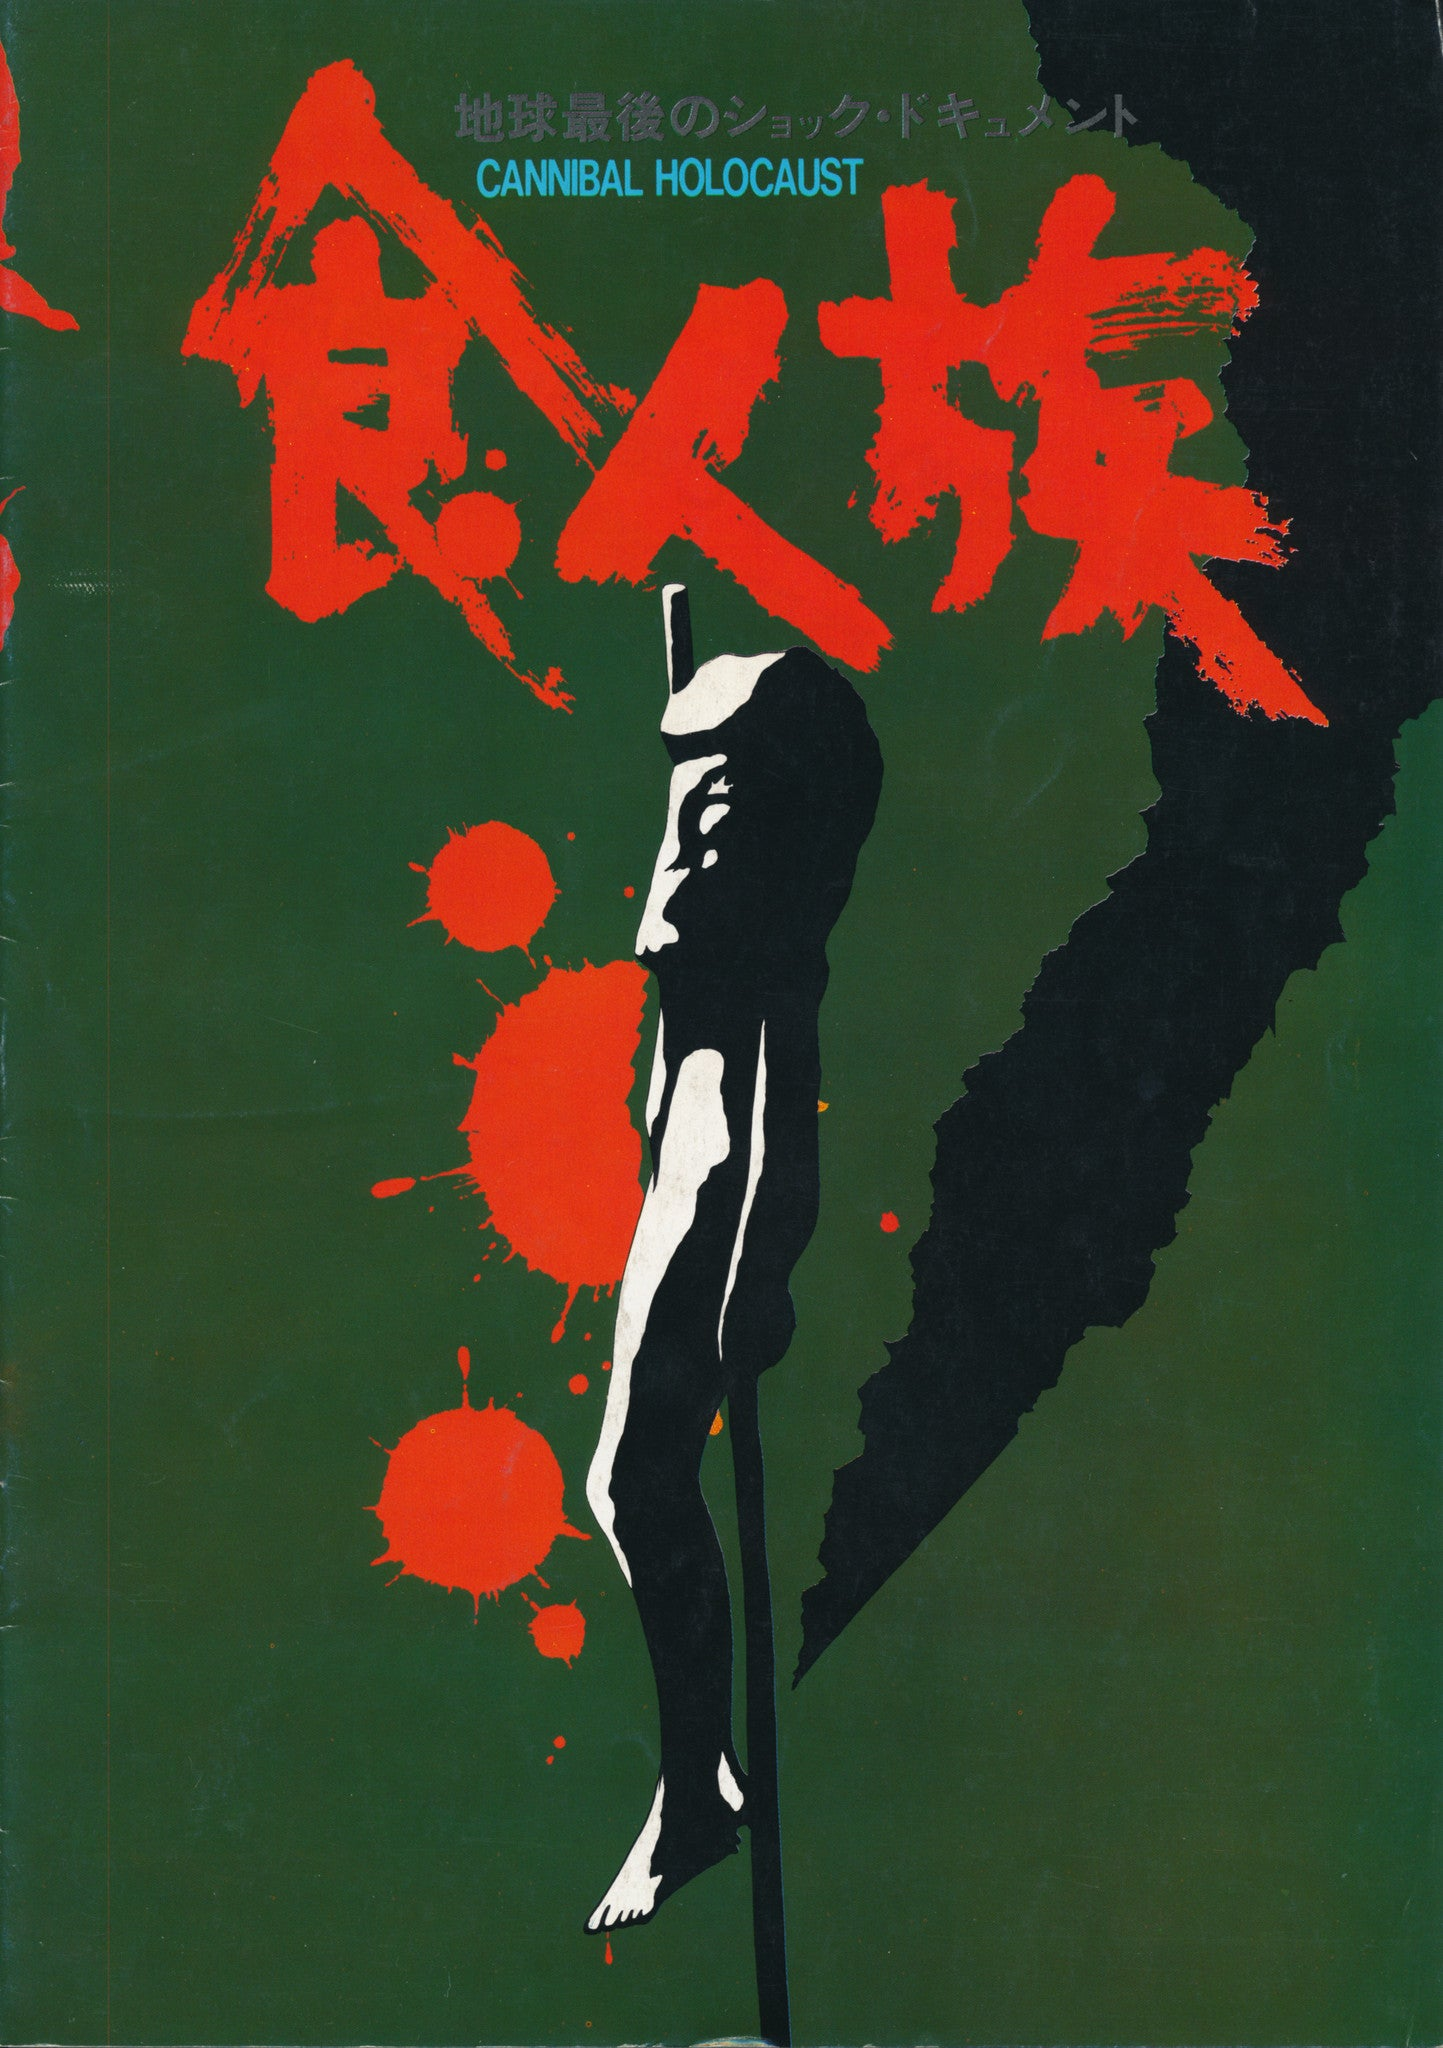 CANNIBAL HOLOCAUST - Japanese program